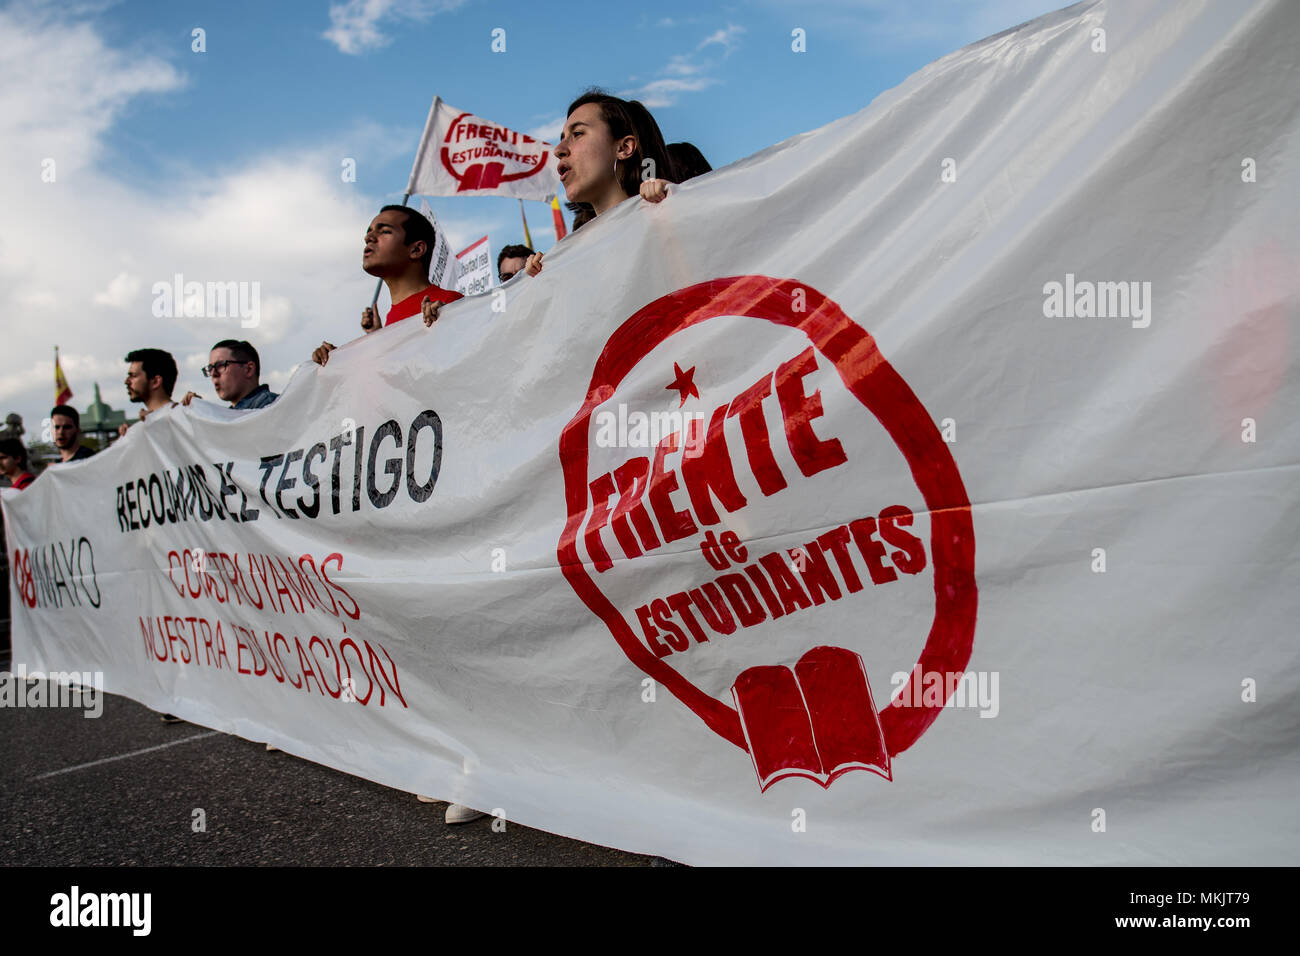 Madrid, Spain. 08th May, 2018. Students protesting with a banner during a demonstration against budget cuts in education and against education law (LOMCE), in Madrid, Spain. Credit: Marcos del Mazo/Alamy Live News - Stock Image